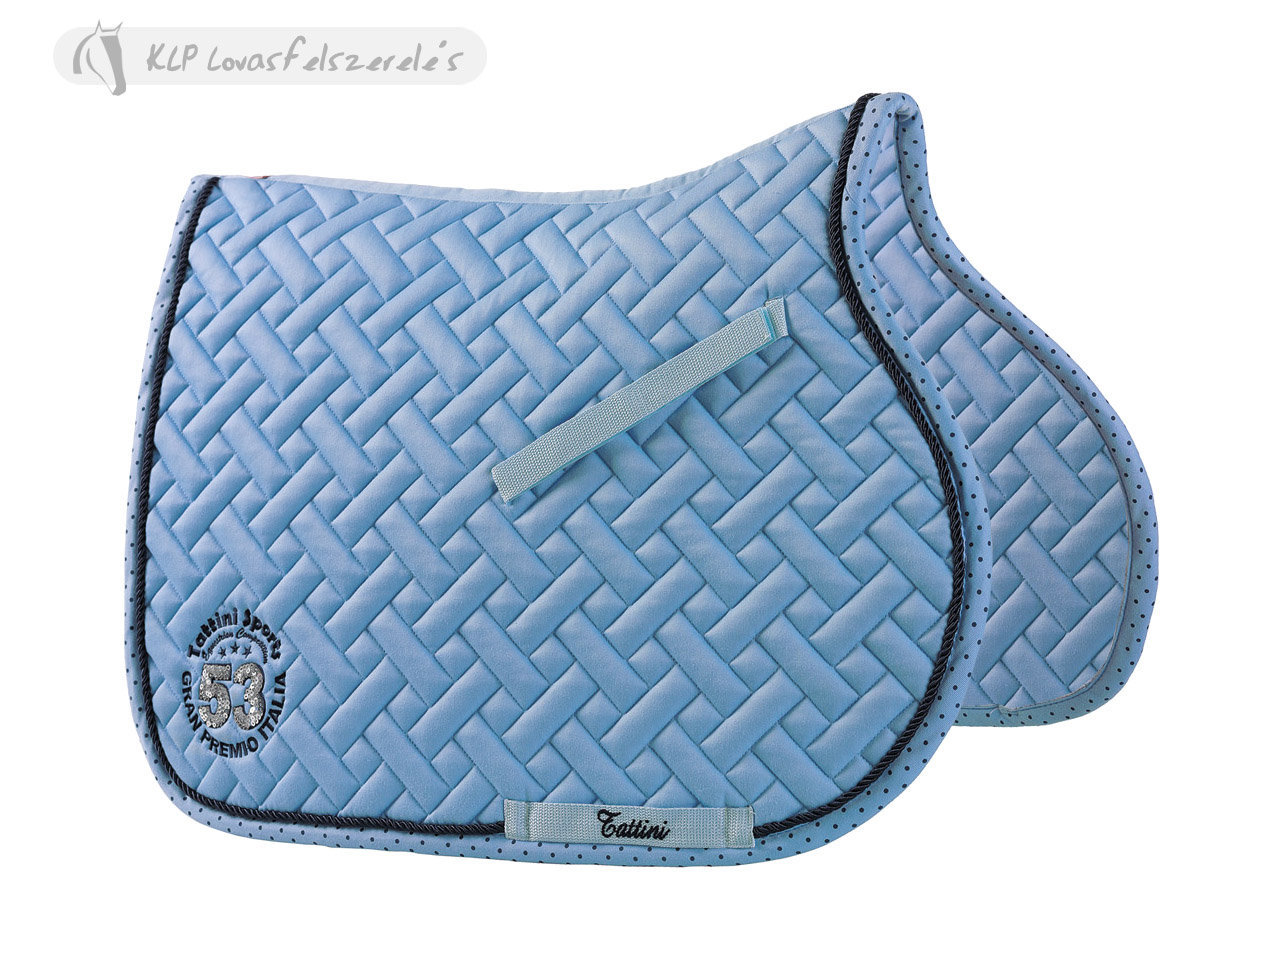 Tattini Saddle Pad With Polka Dot Ribbon